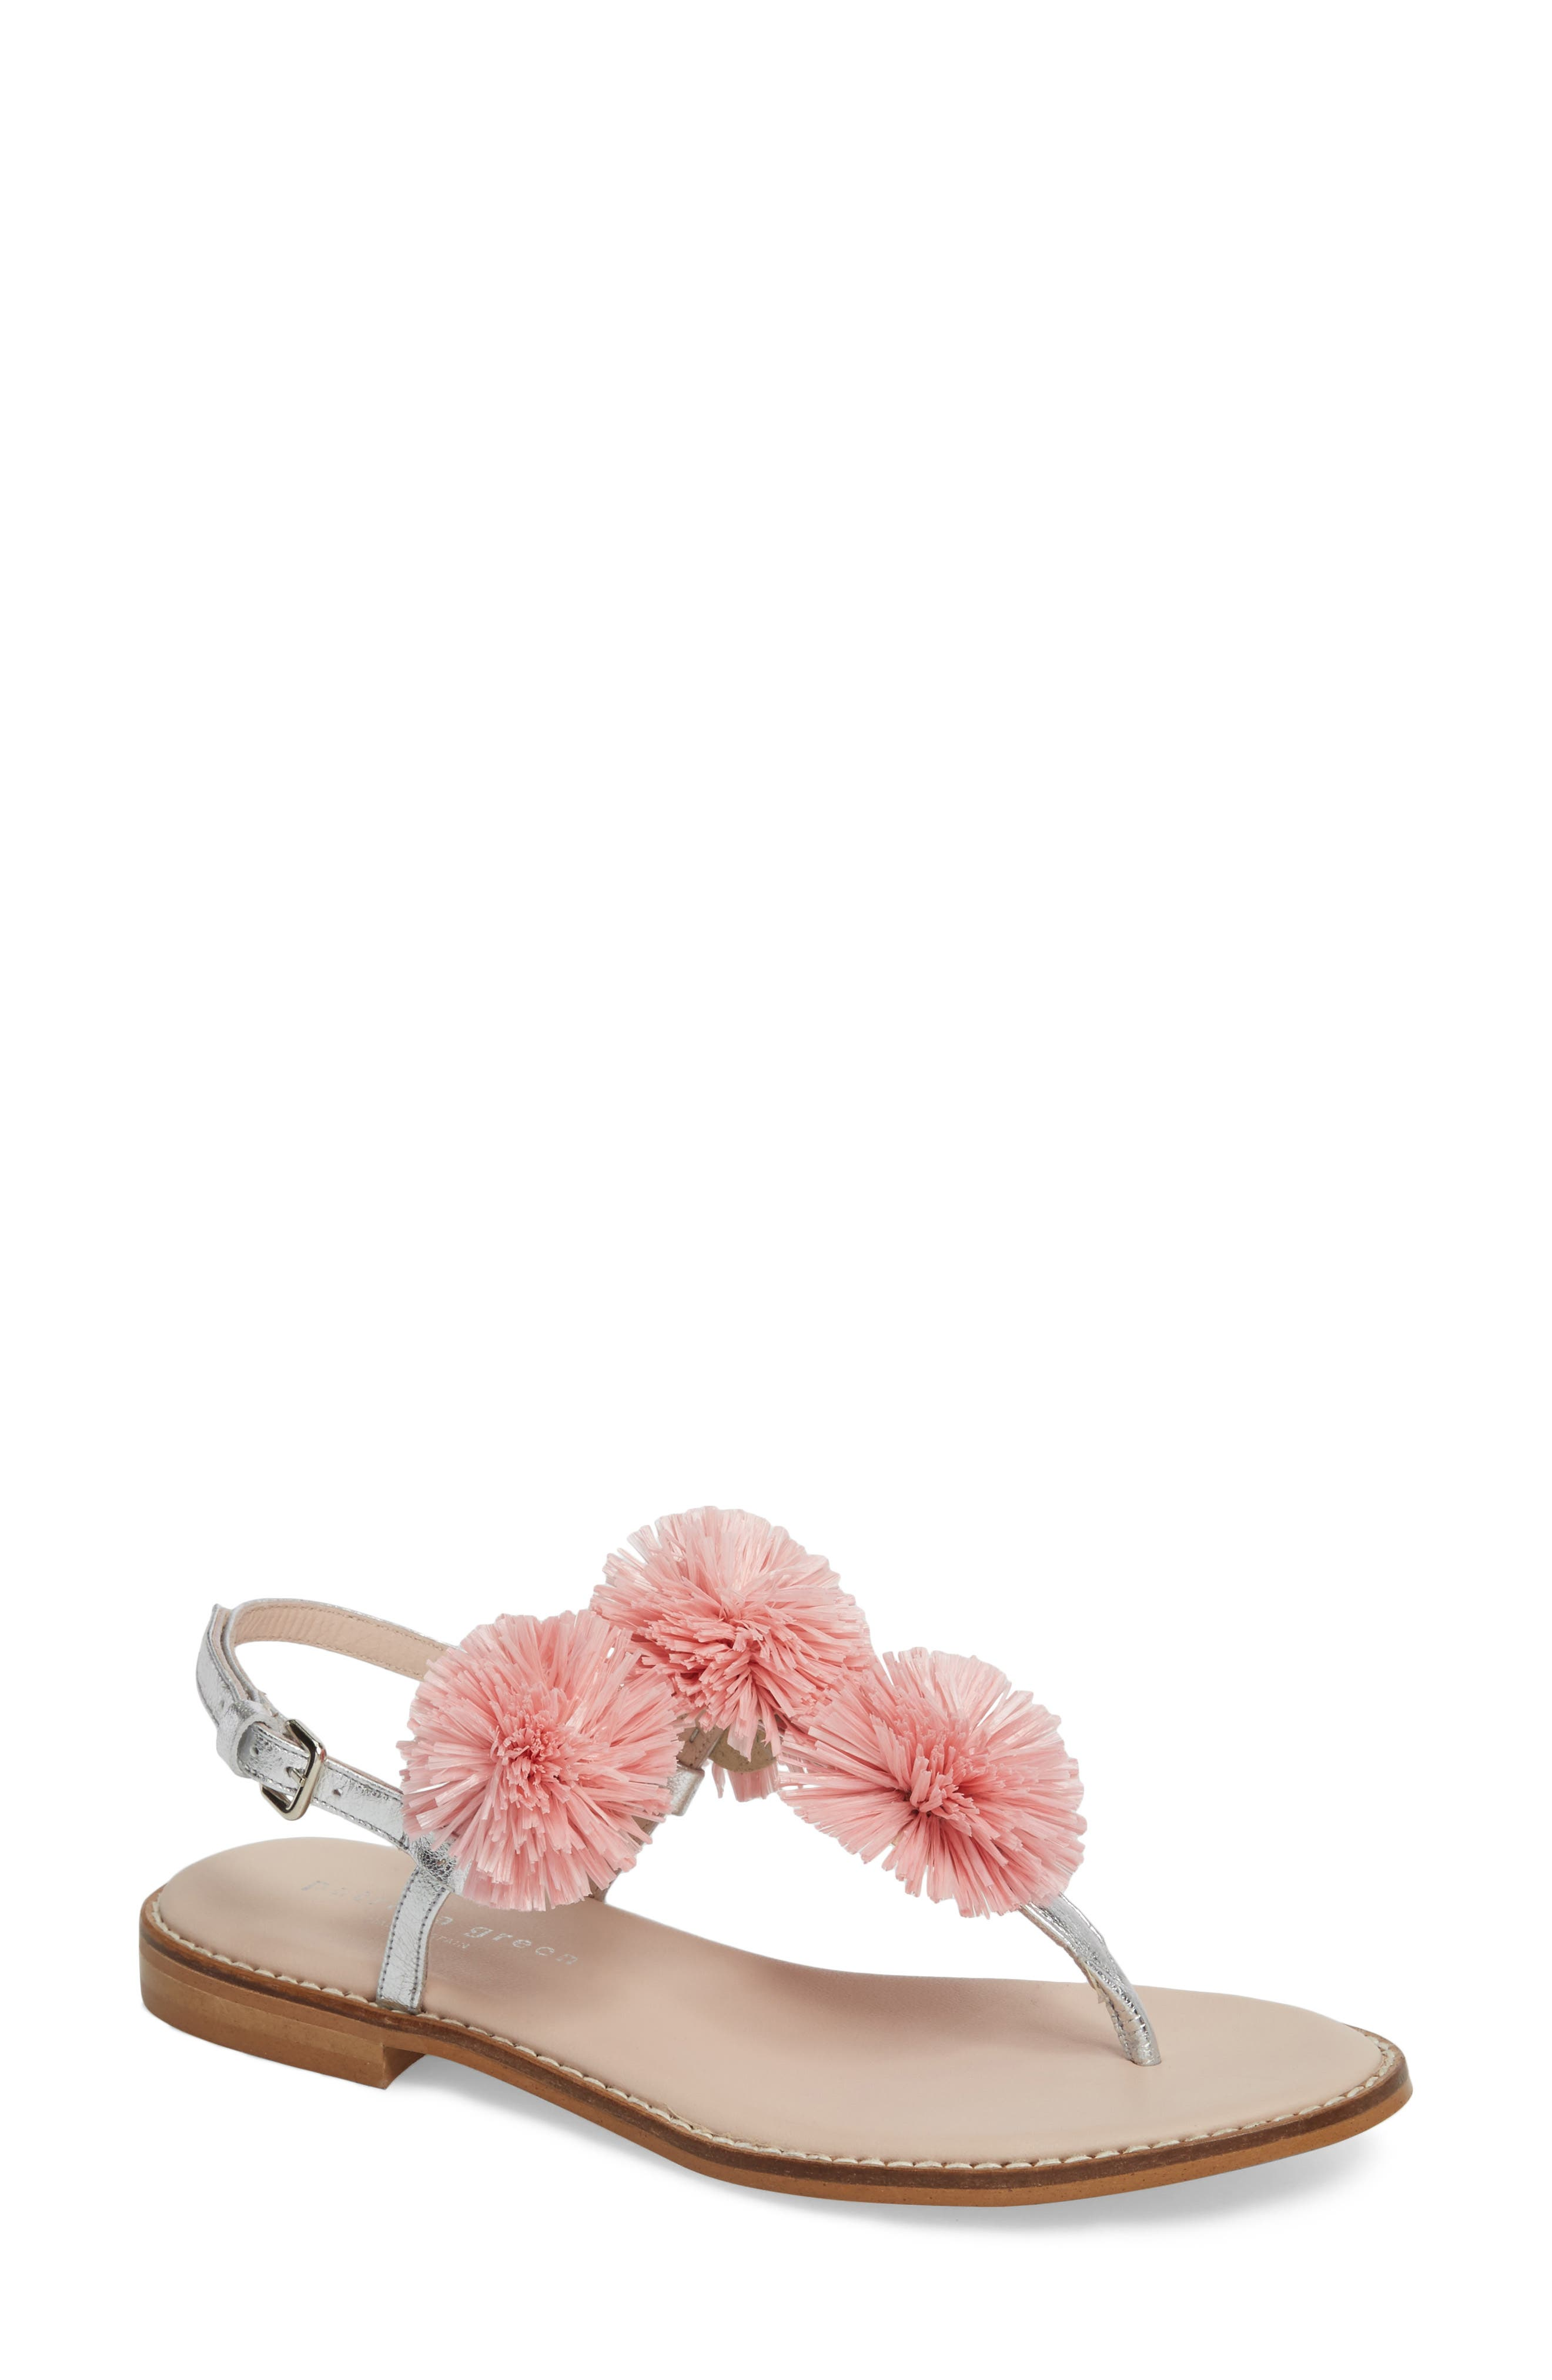 Pompom Thong Sandal,                             Main thumbnail 1, color,                             PINK LEATHER